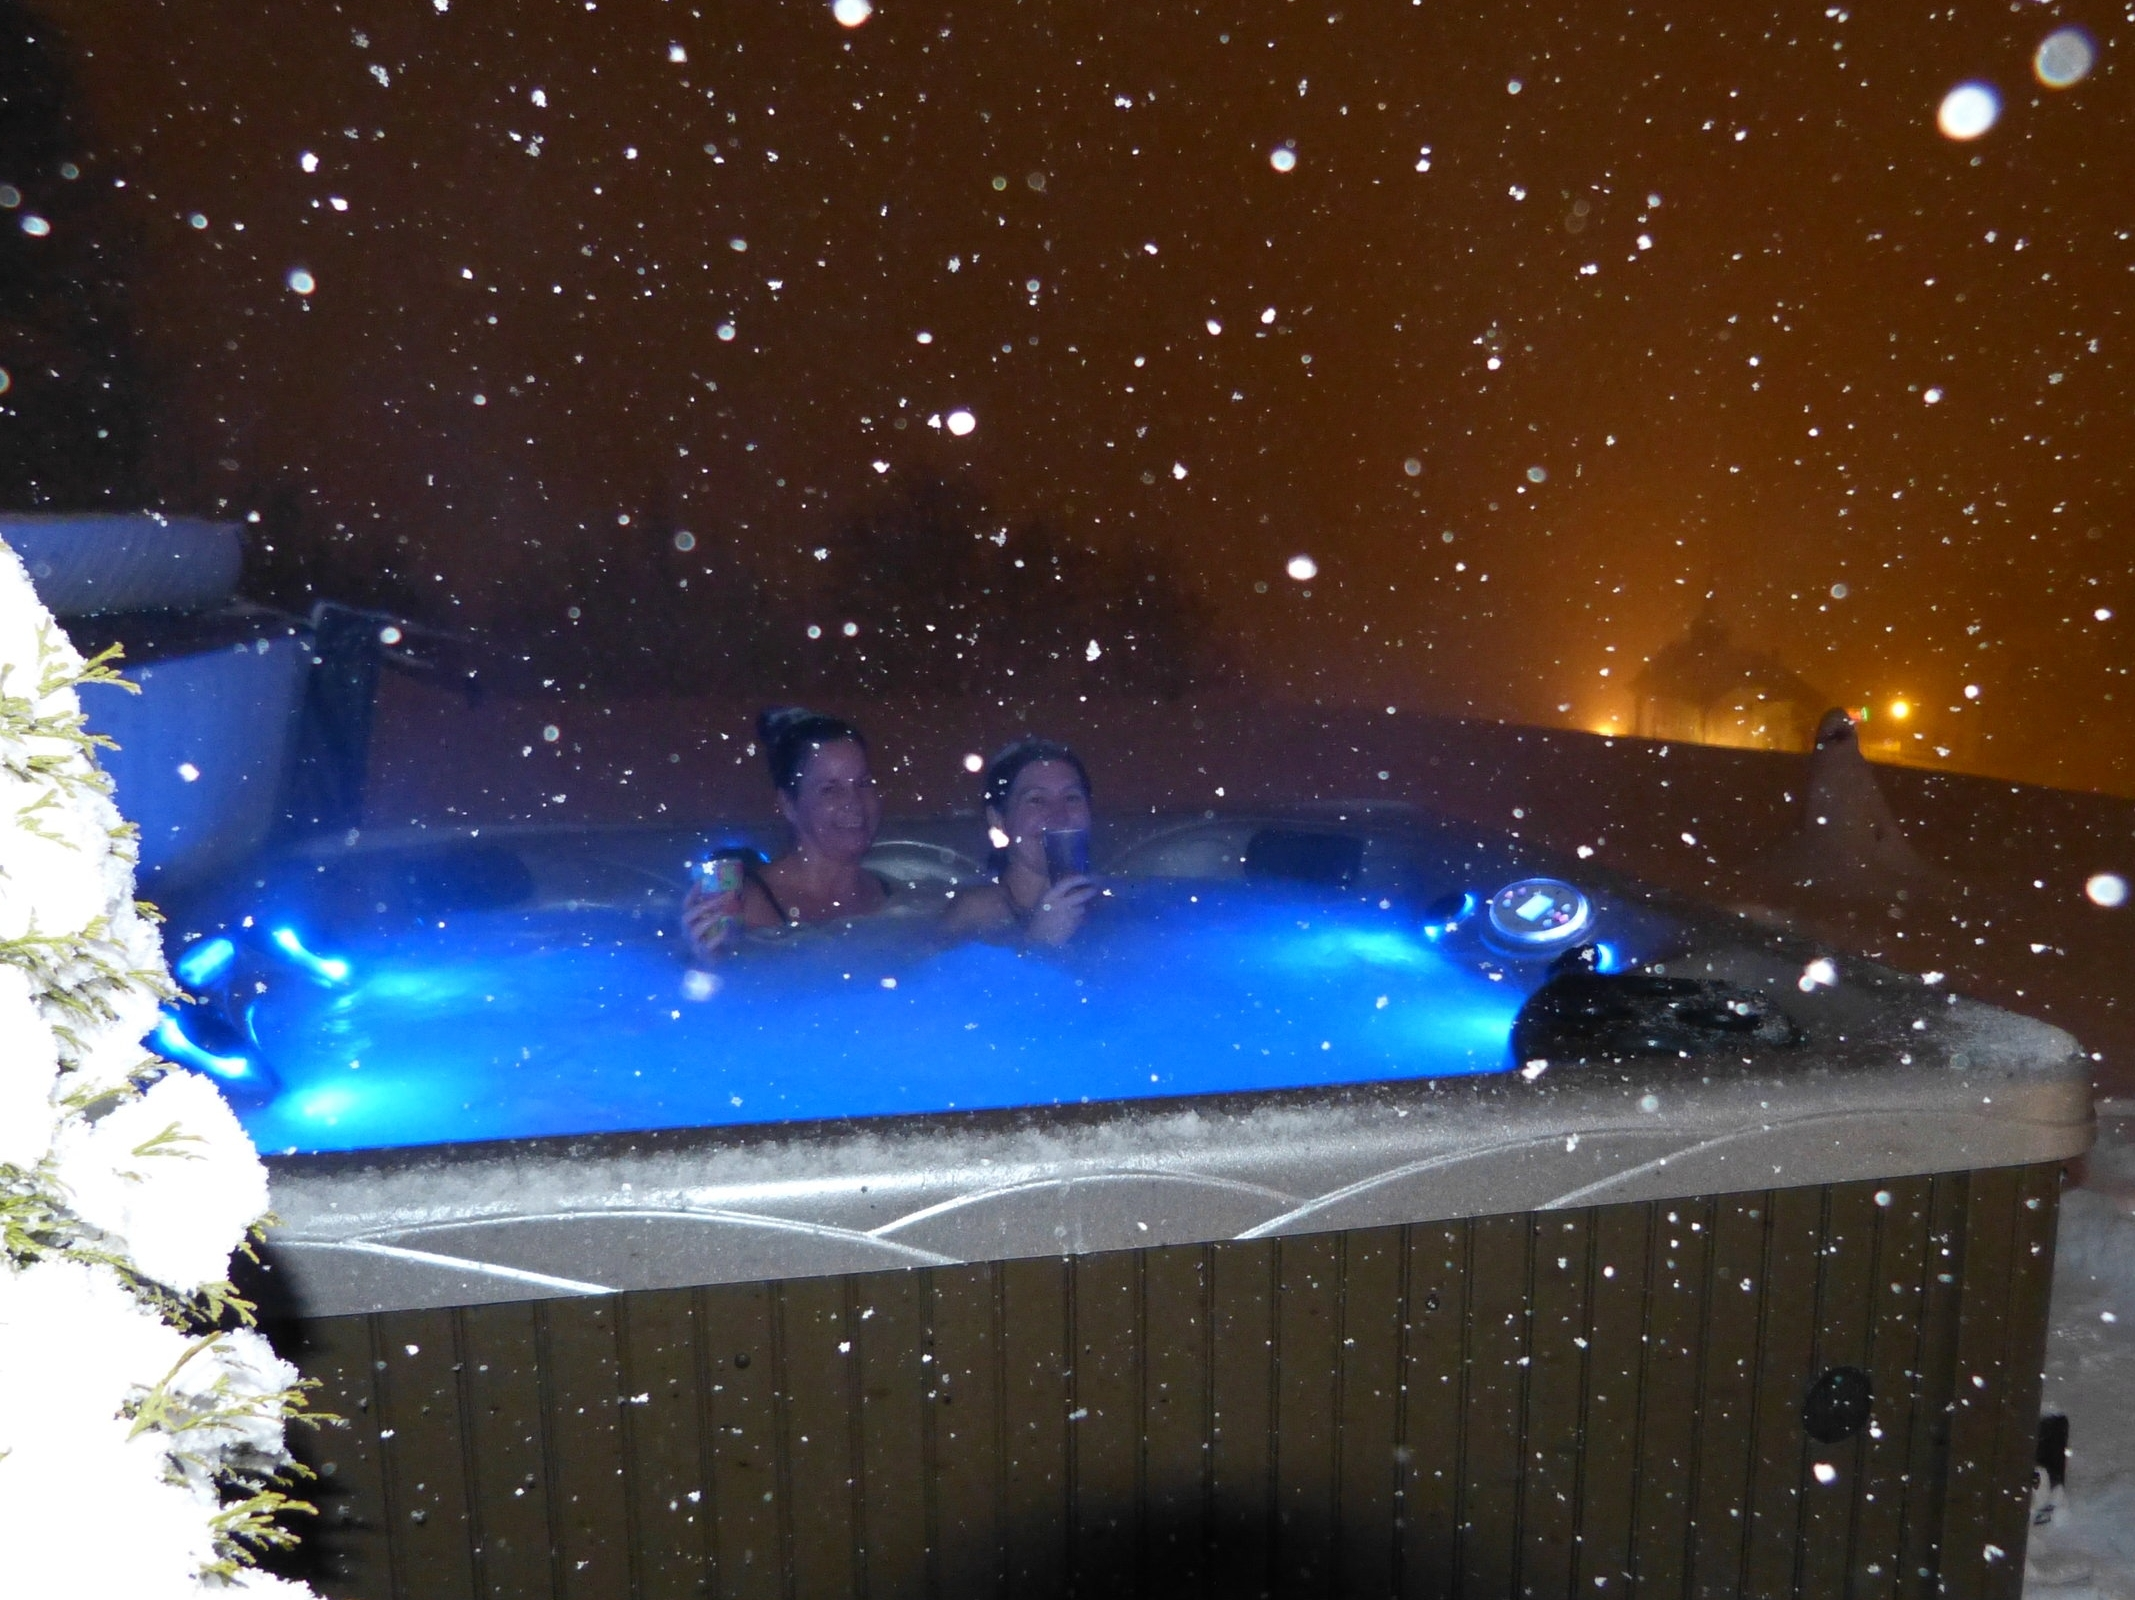 night time hot tub with a snowy view of the old church